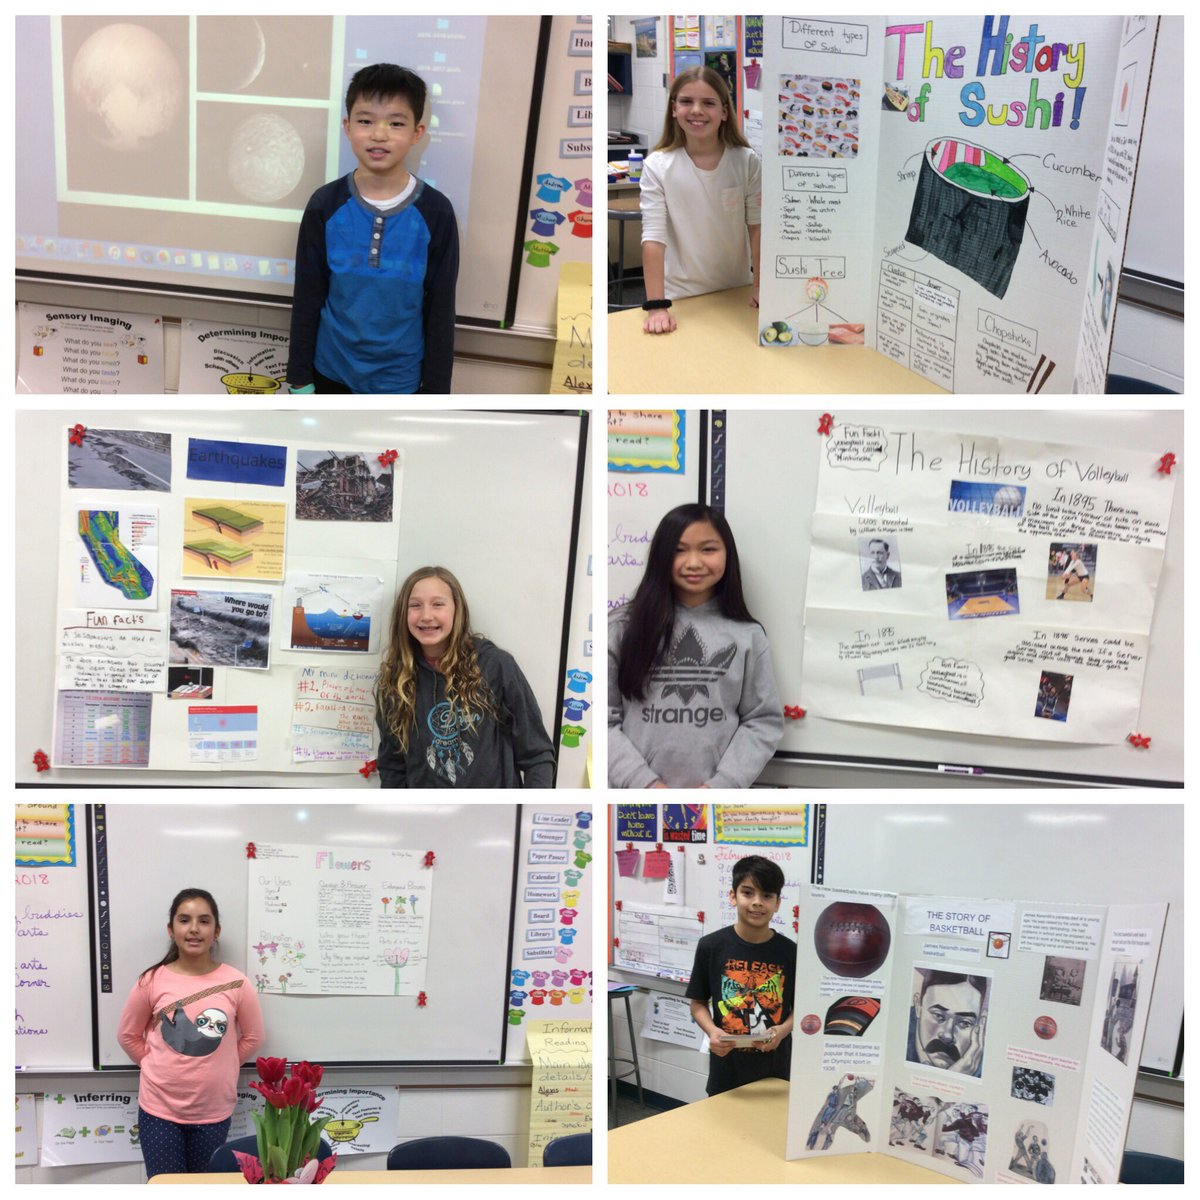 test Twitter Media - Dwarf planets, sushi, earthquakes, sports, and flowers - such interesting topics to research! #d30learns #wbplays https://t.co/qfe9q16KyC